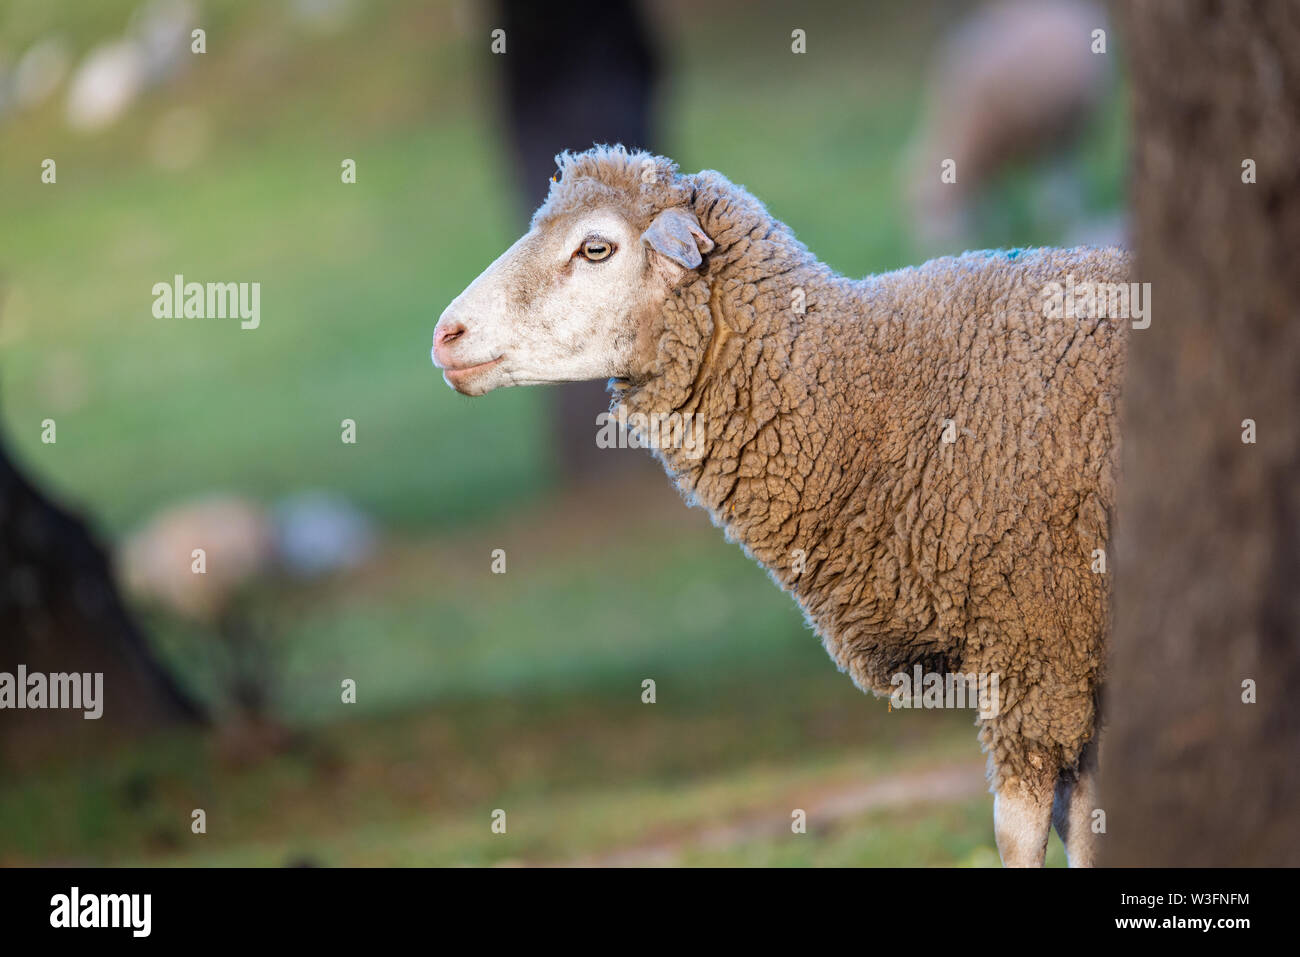 sheep behind a tree with copy space for text - Stock Image